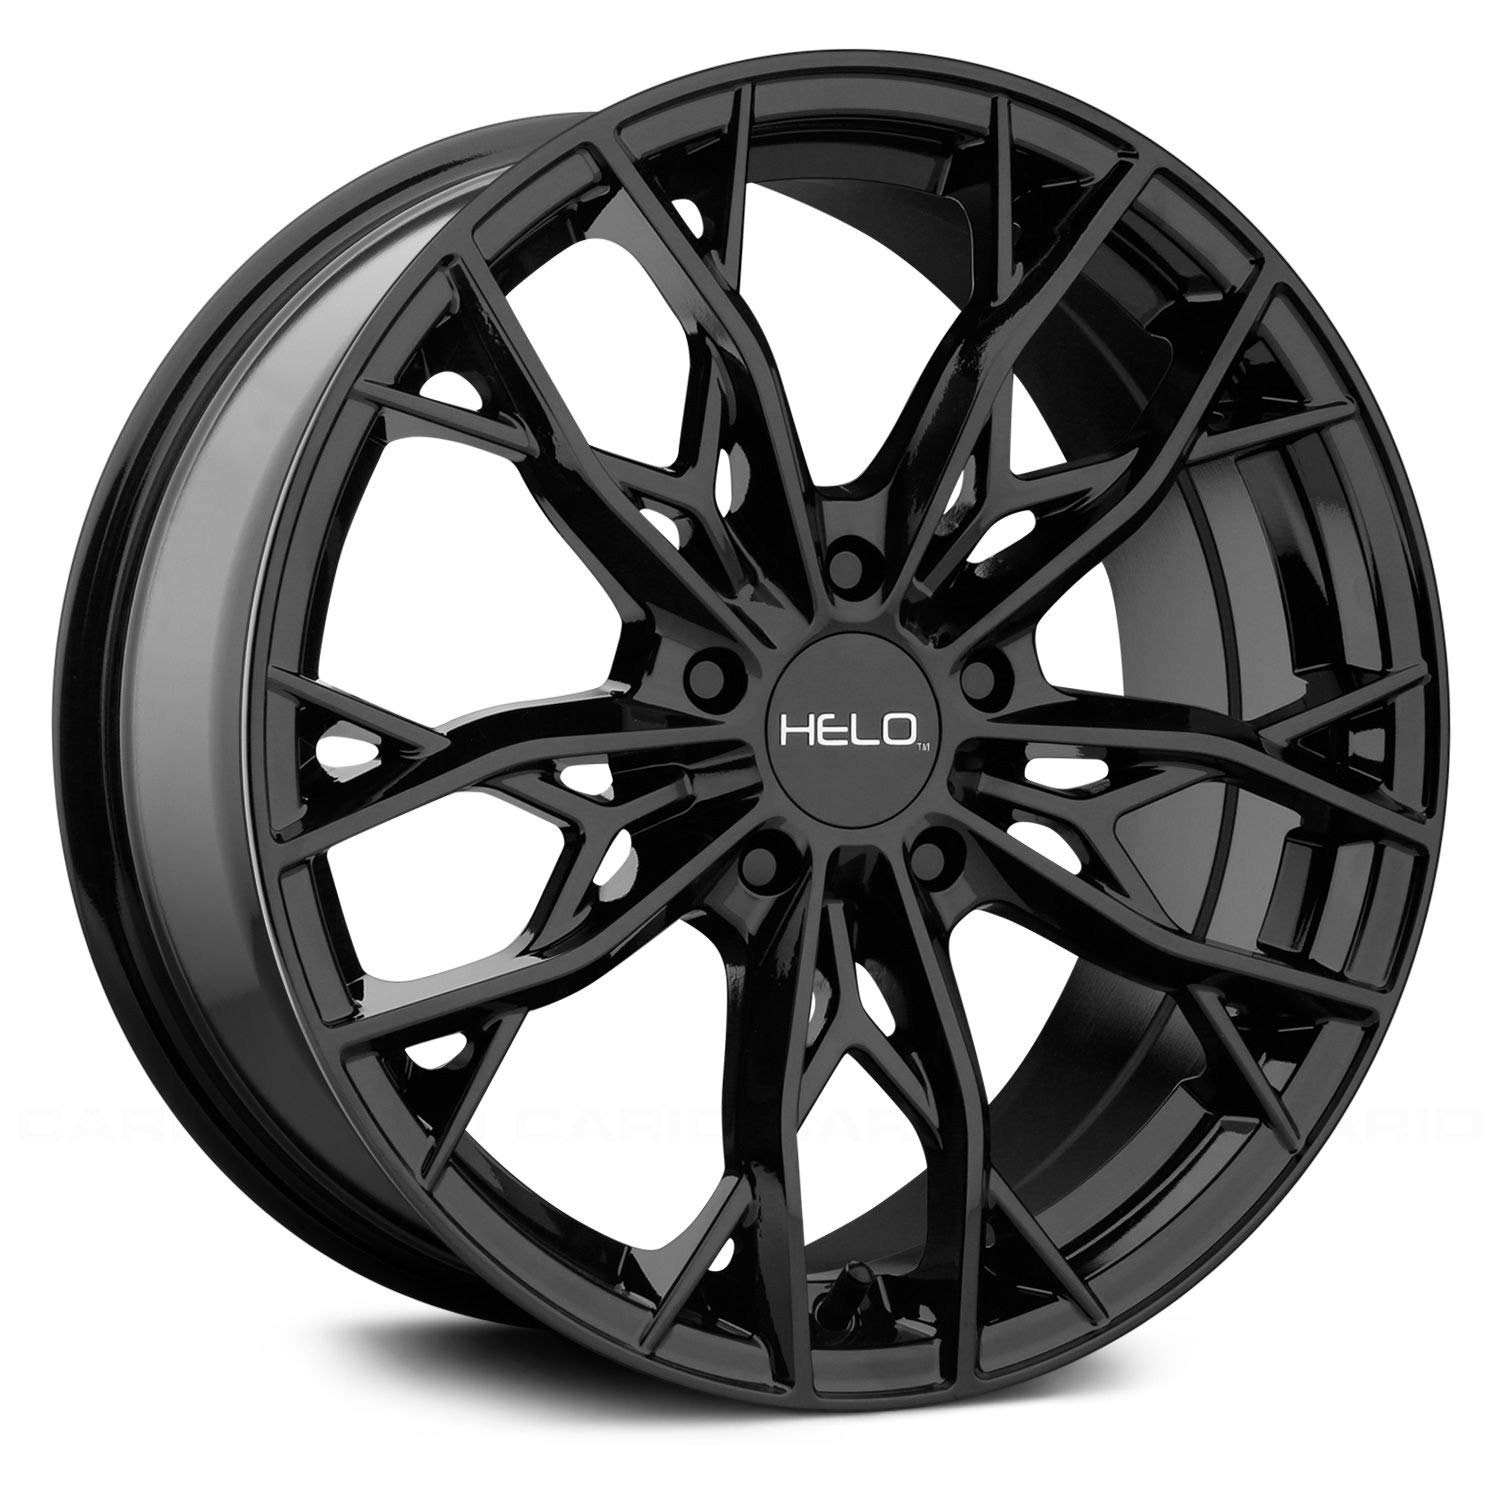 18 x 8. inches //5 x 72 mm, 40 mm Offset hexavalent compounds HELO HE907 Gloss Black Wheel Chromium